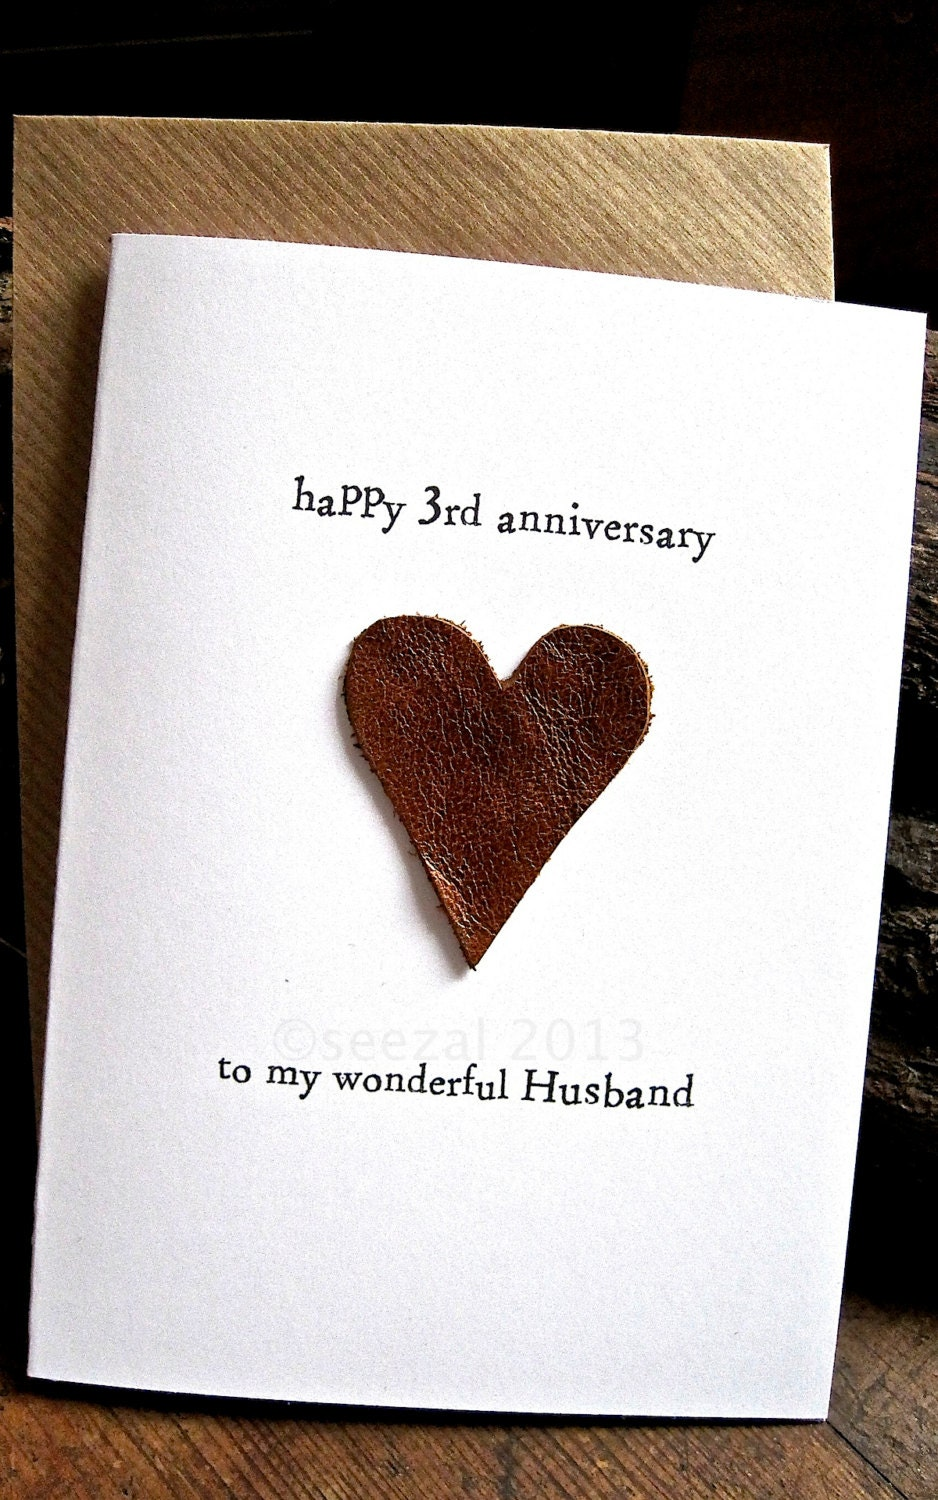 3rd Year Wedding Anniversary Gifts: 3rd Wedding Anniversary Card HUSBAND Traditional Gift LEATHER